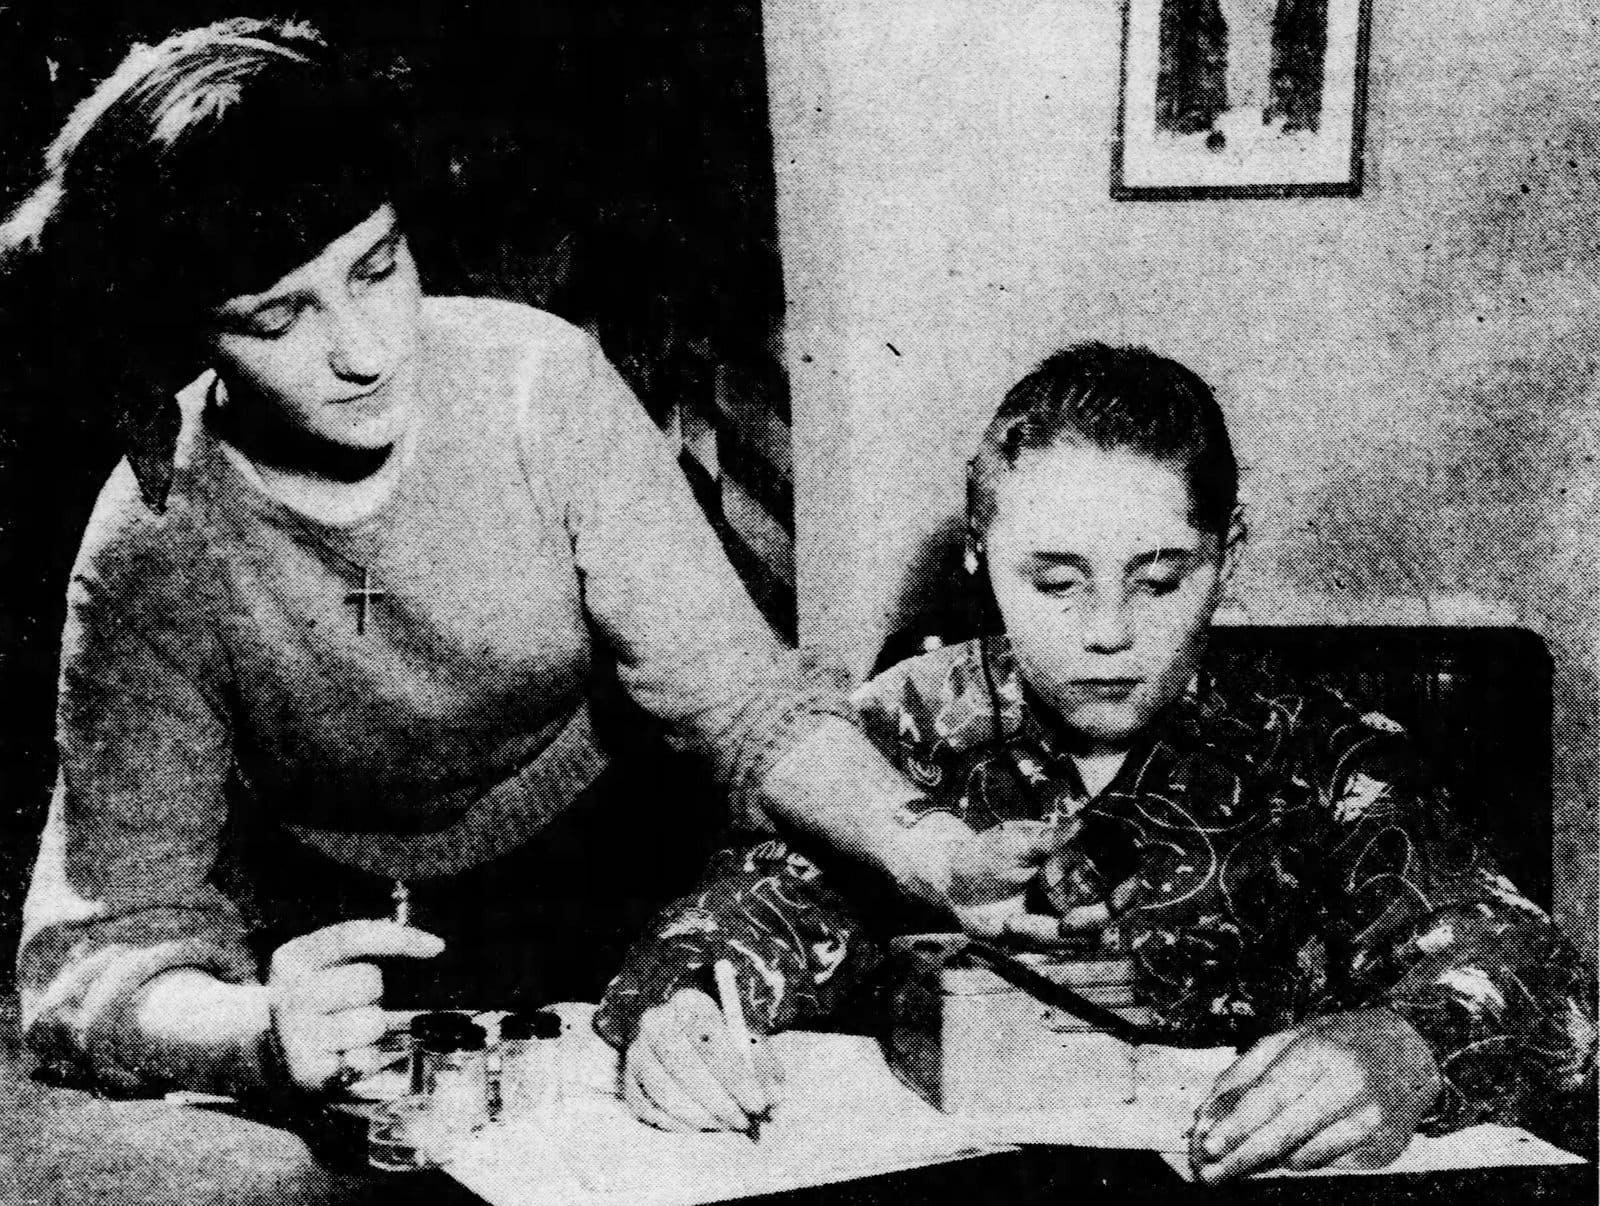 Kids in 1950 with a Gilbert U-238 Atomic Energy Lab kit at home (1)